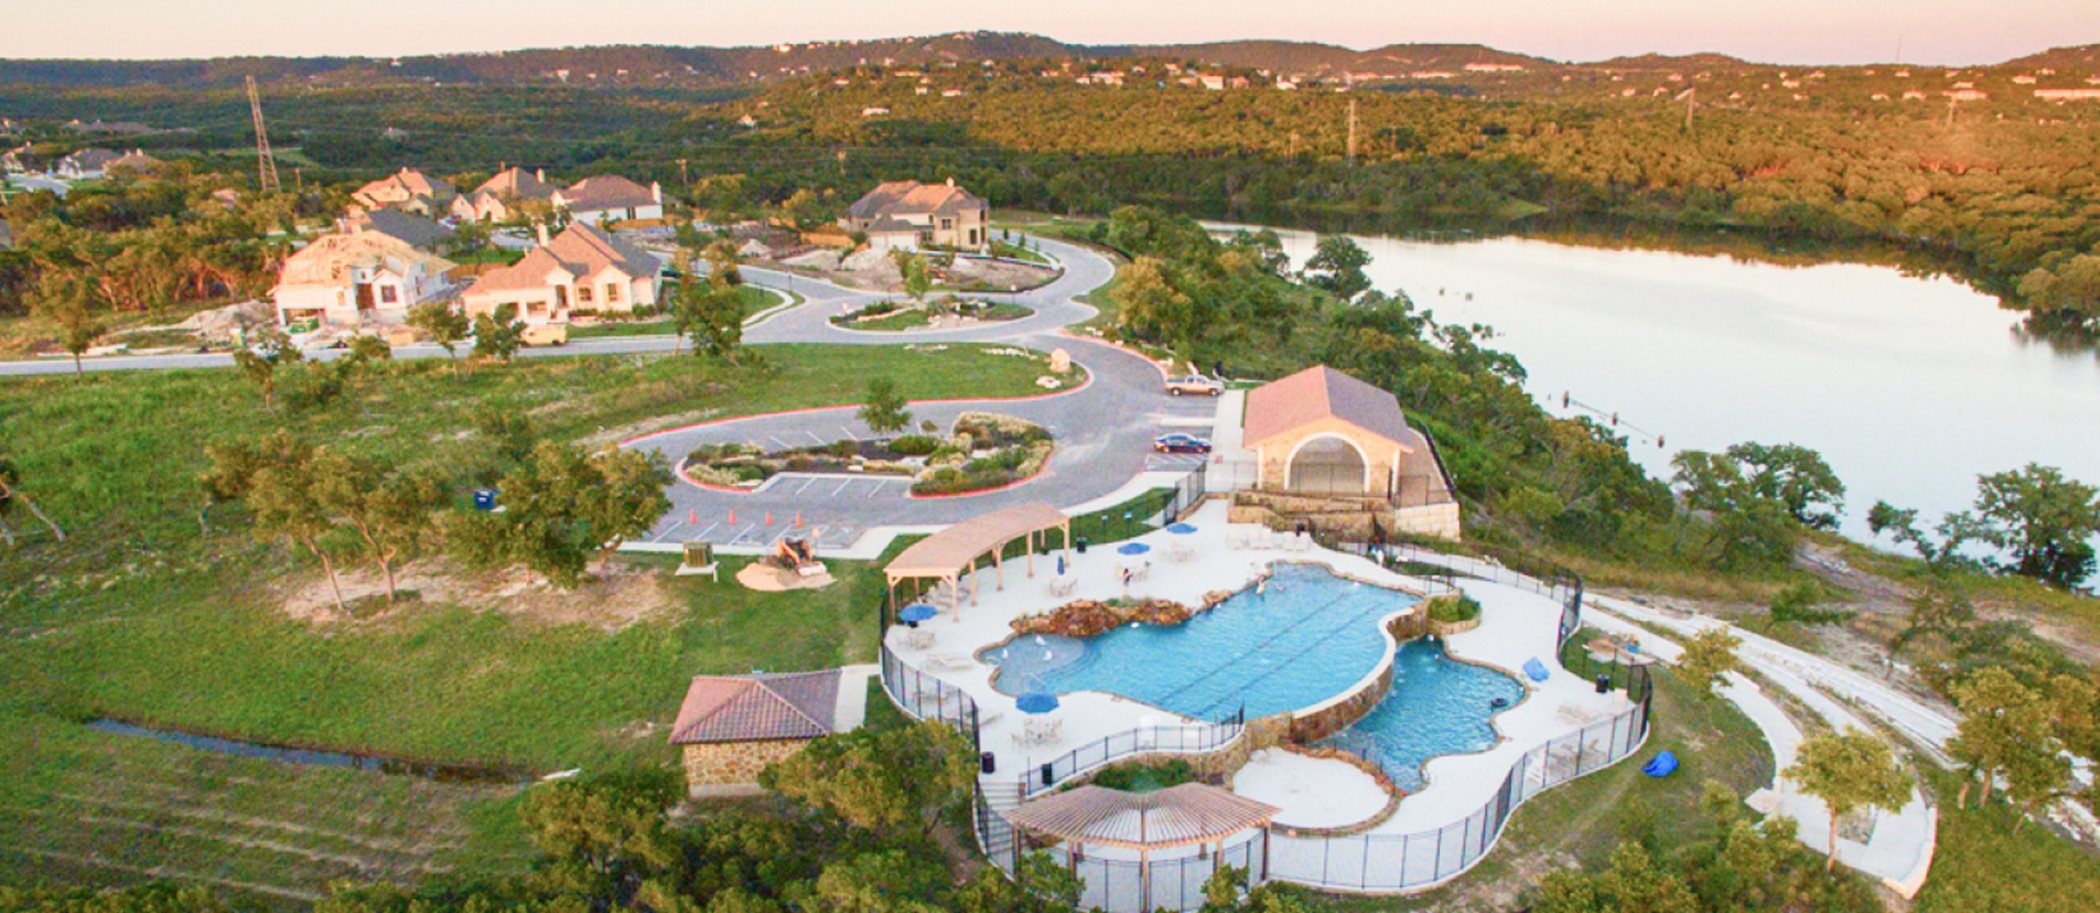 Aerial view of Lakeside at Tessera swimming pool and clubhouse